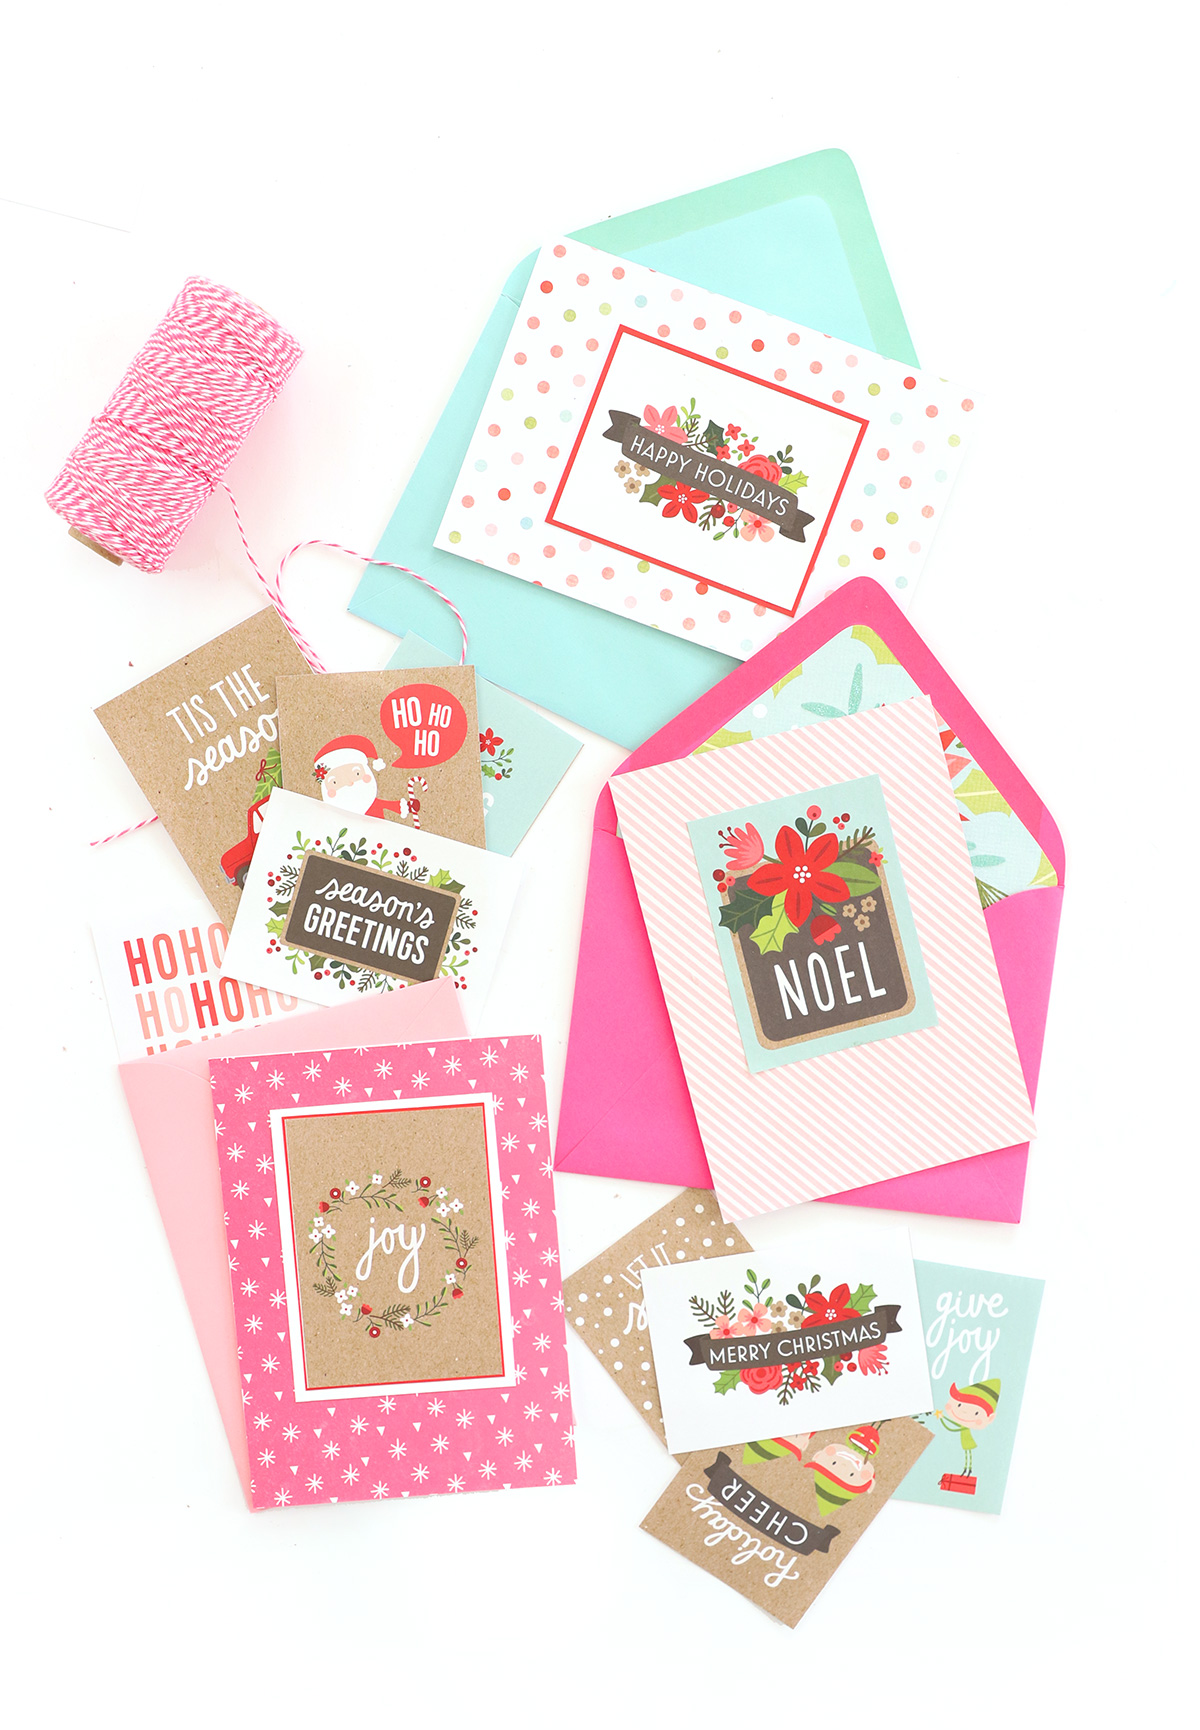 Paper Crafted Holiday Cards